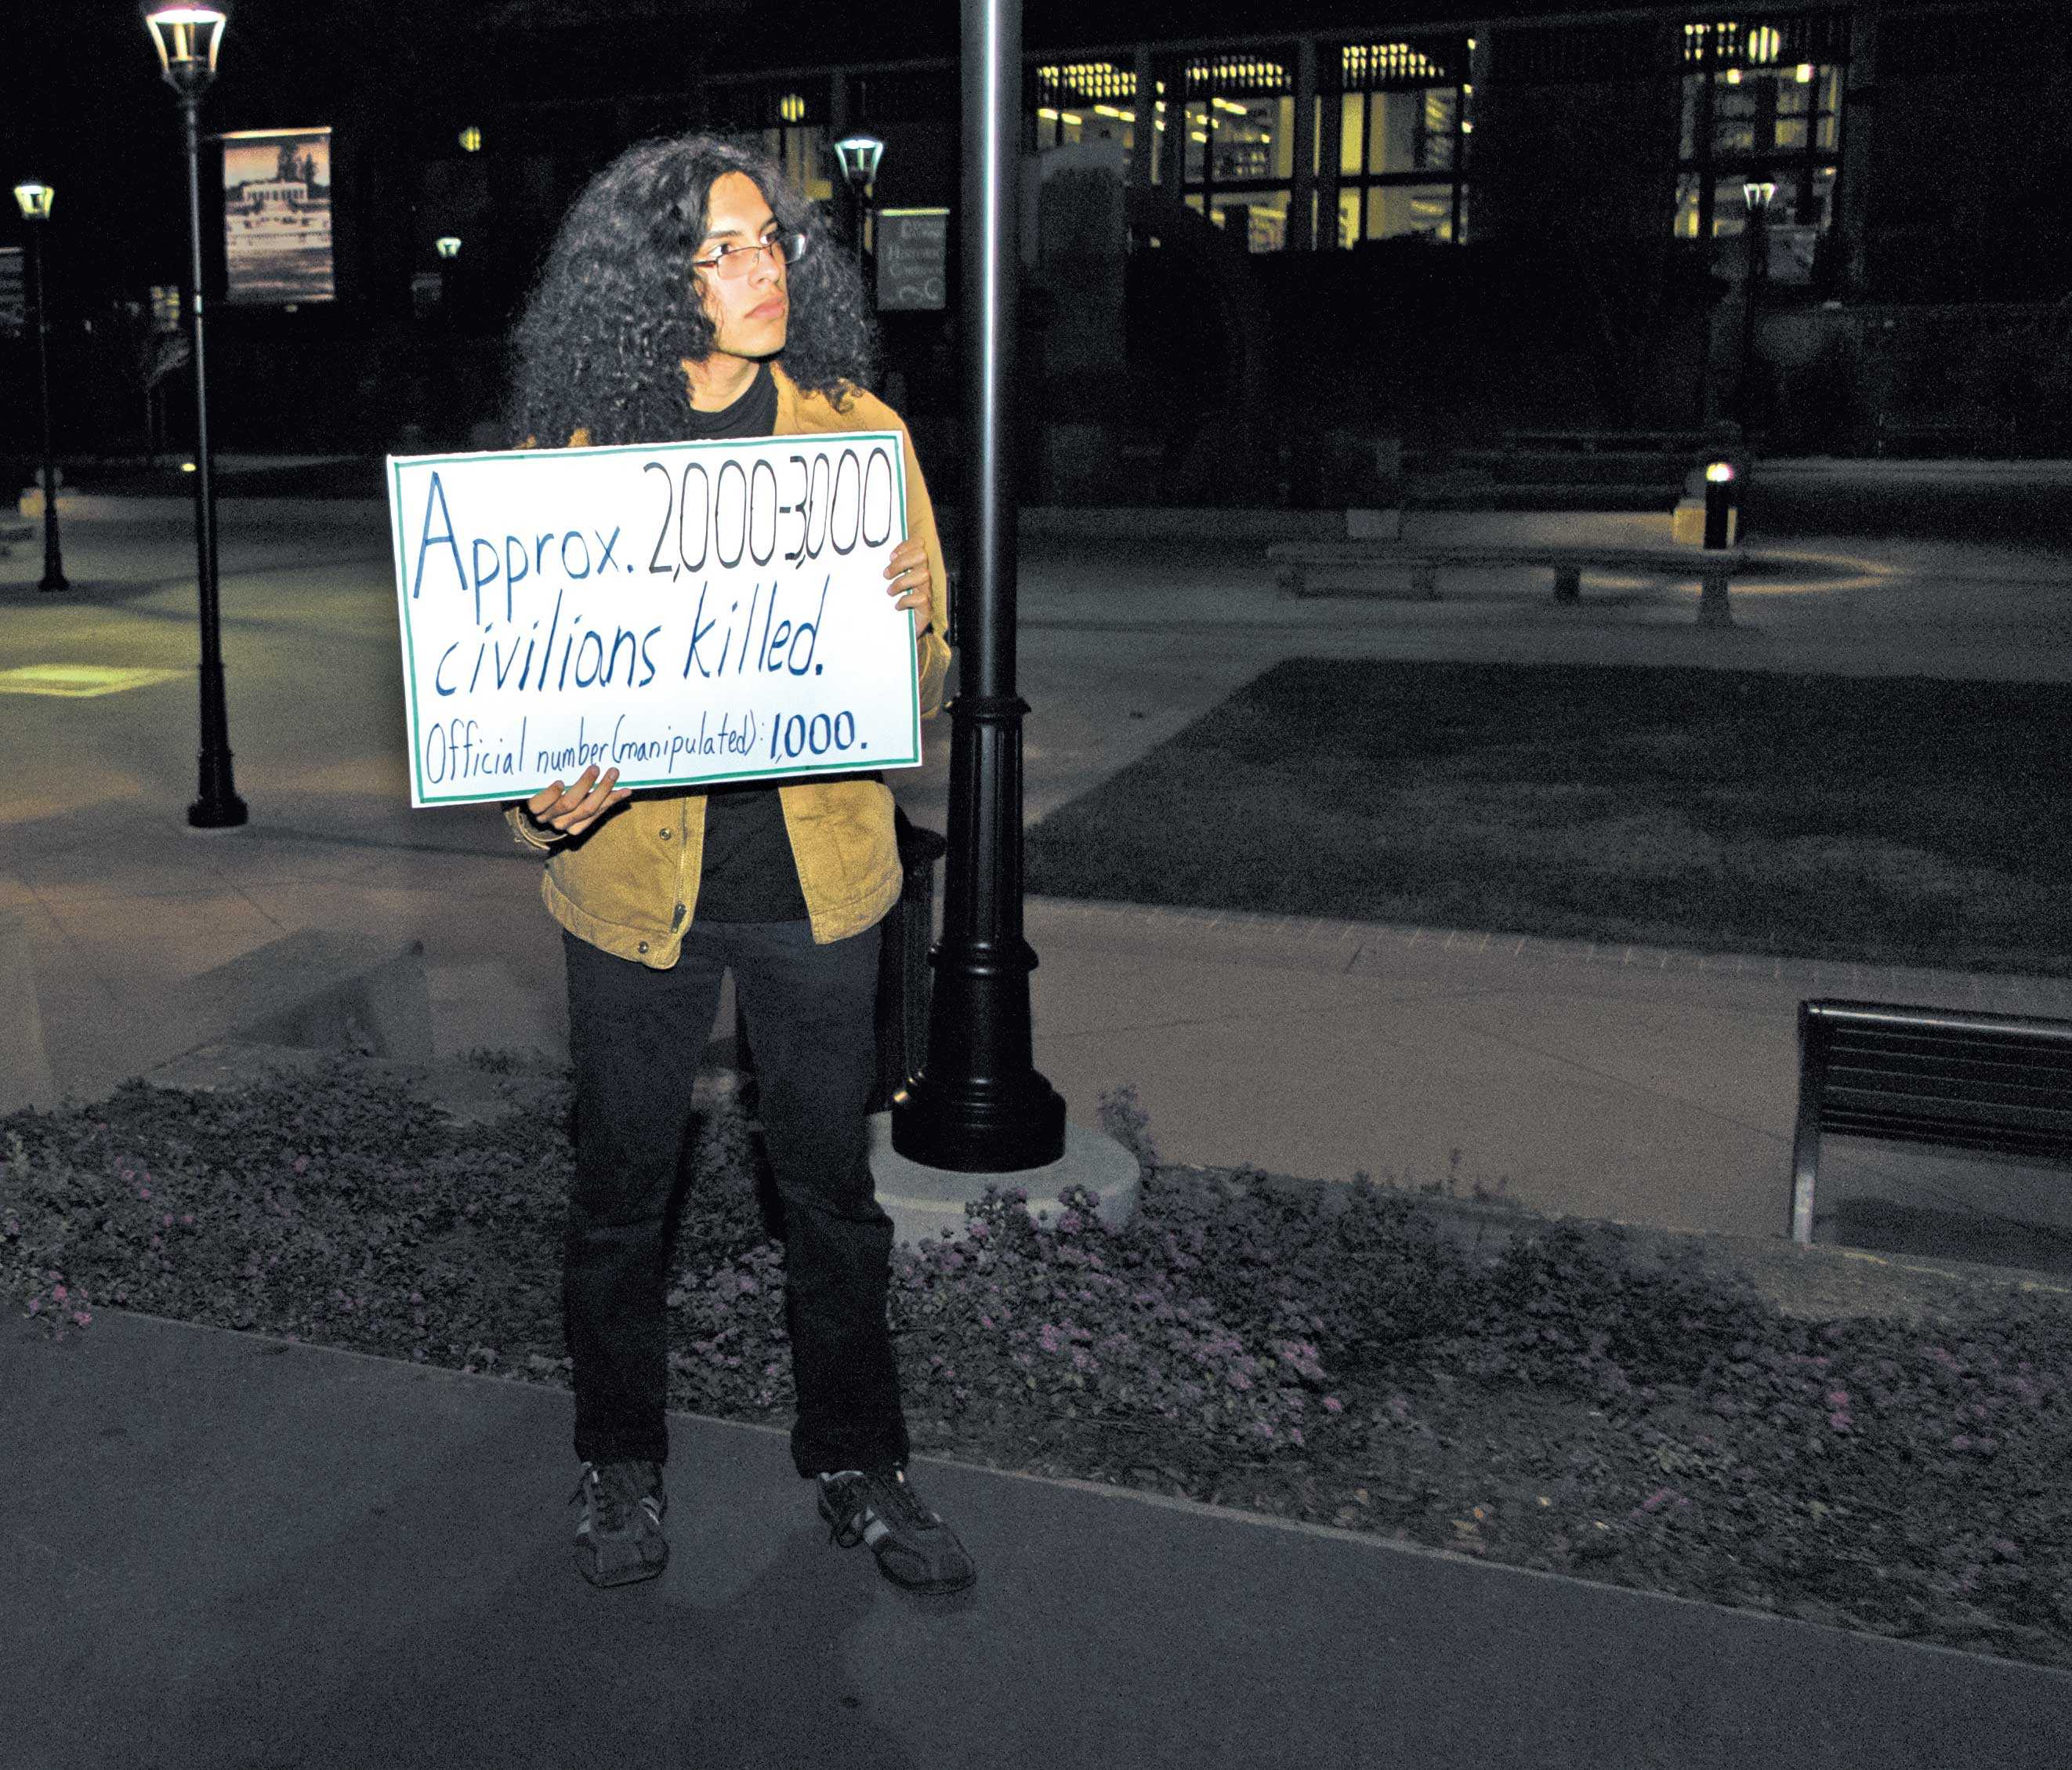 Students for Justice club member Steven Alvarado holds up a sign detailing the number of civilian drone strike casualties in protest of former Secretary of Defense Leon Panetta, who spoke at the Flint Center at De Anza College, Feb. 20.